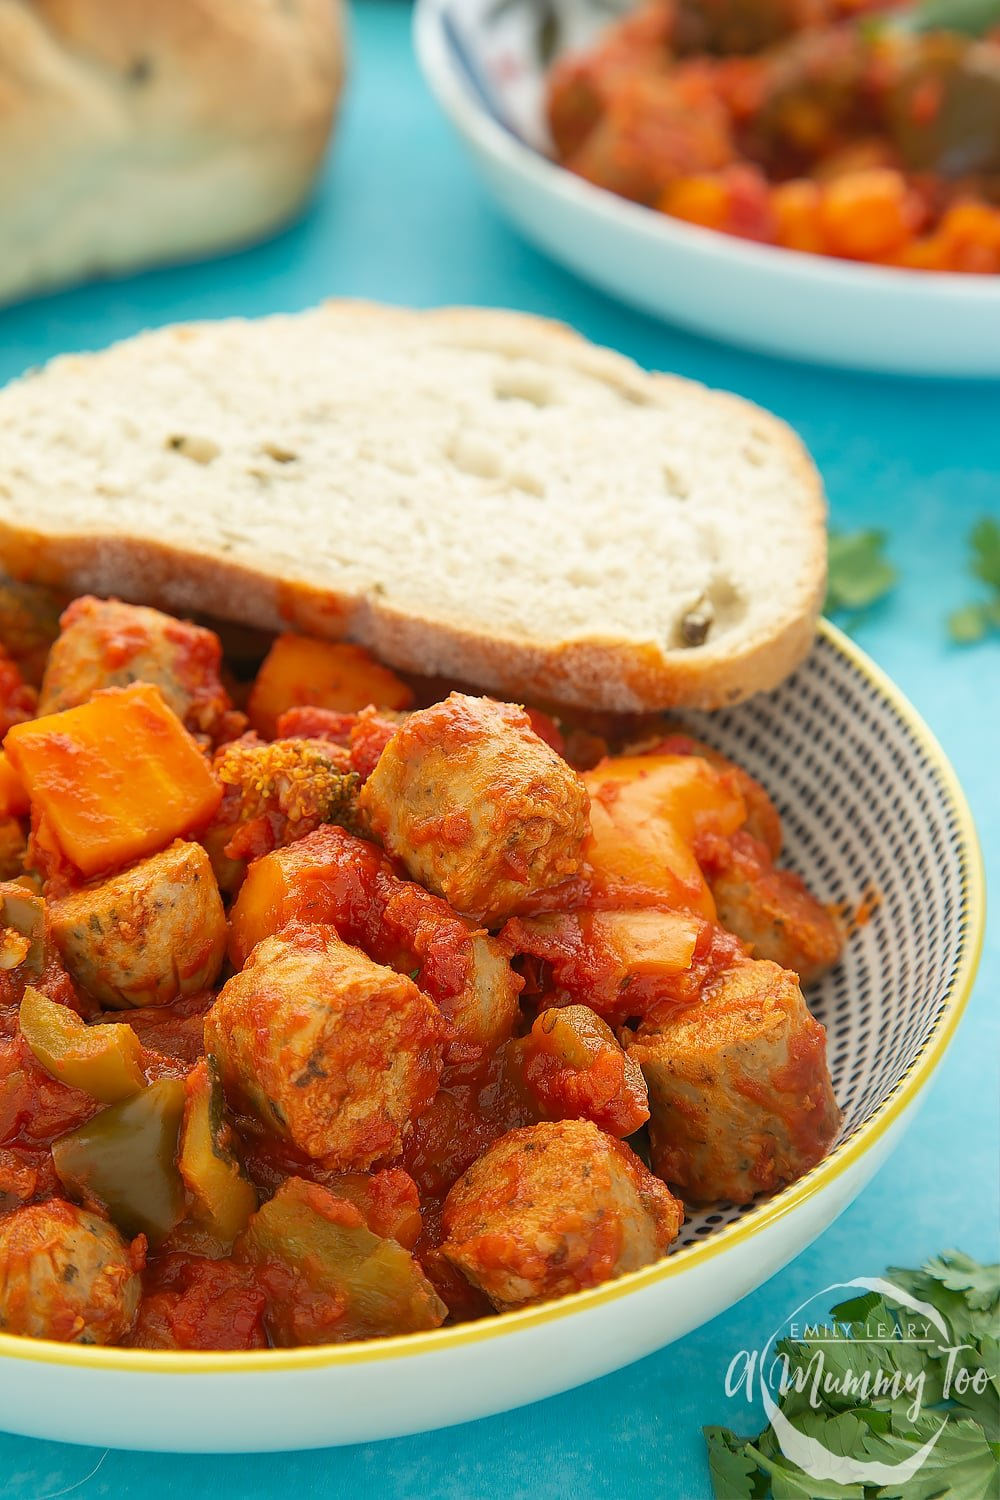 Close up of a bowl of slow-cooked vegetarian sausage casserole with a crusty bread roll on the side. The bowl sits on a blue table.